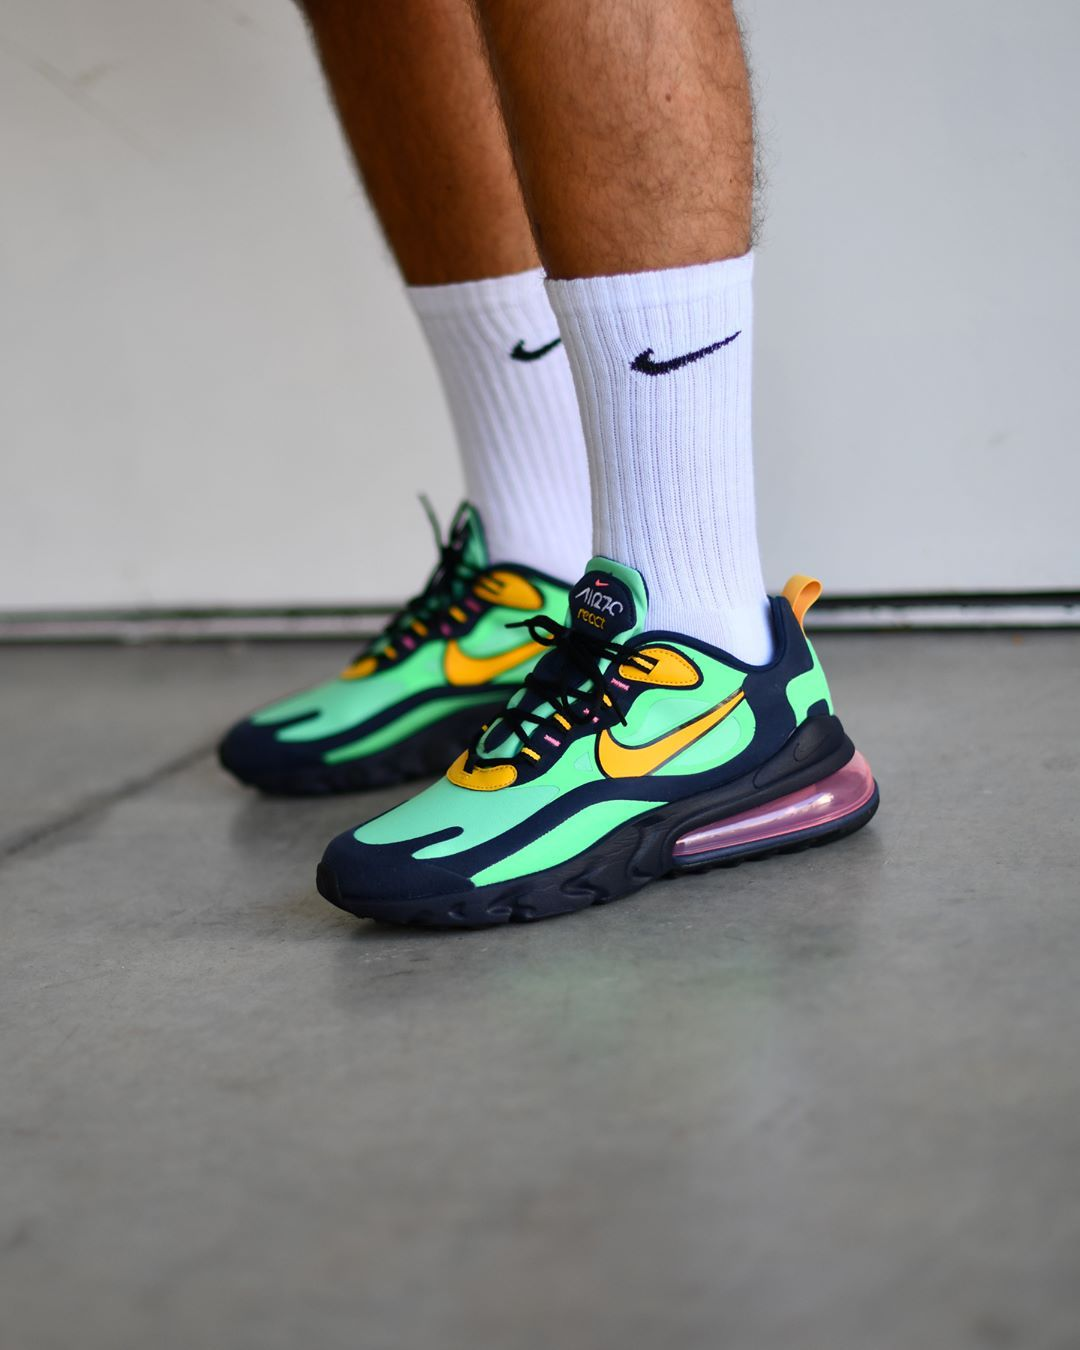 Nike Air Max 270 Pop Art React . Available on SNKRS.COM